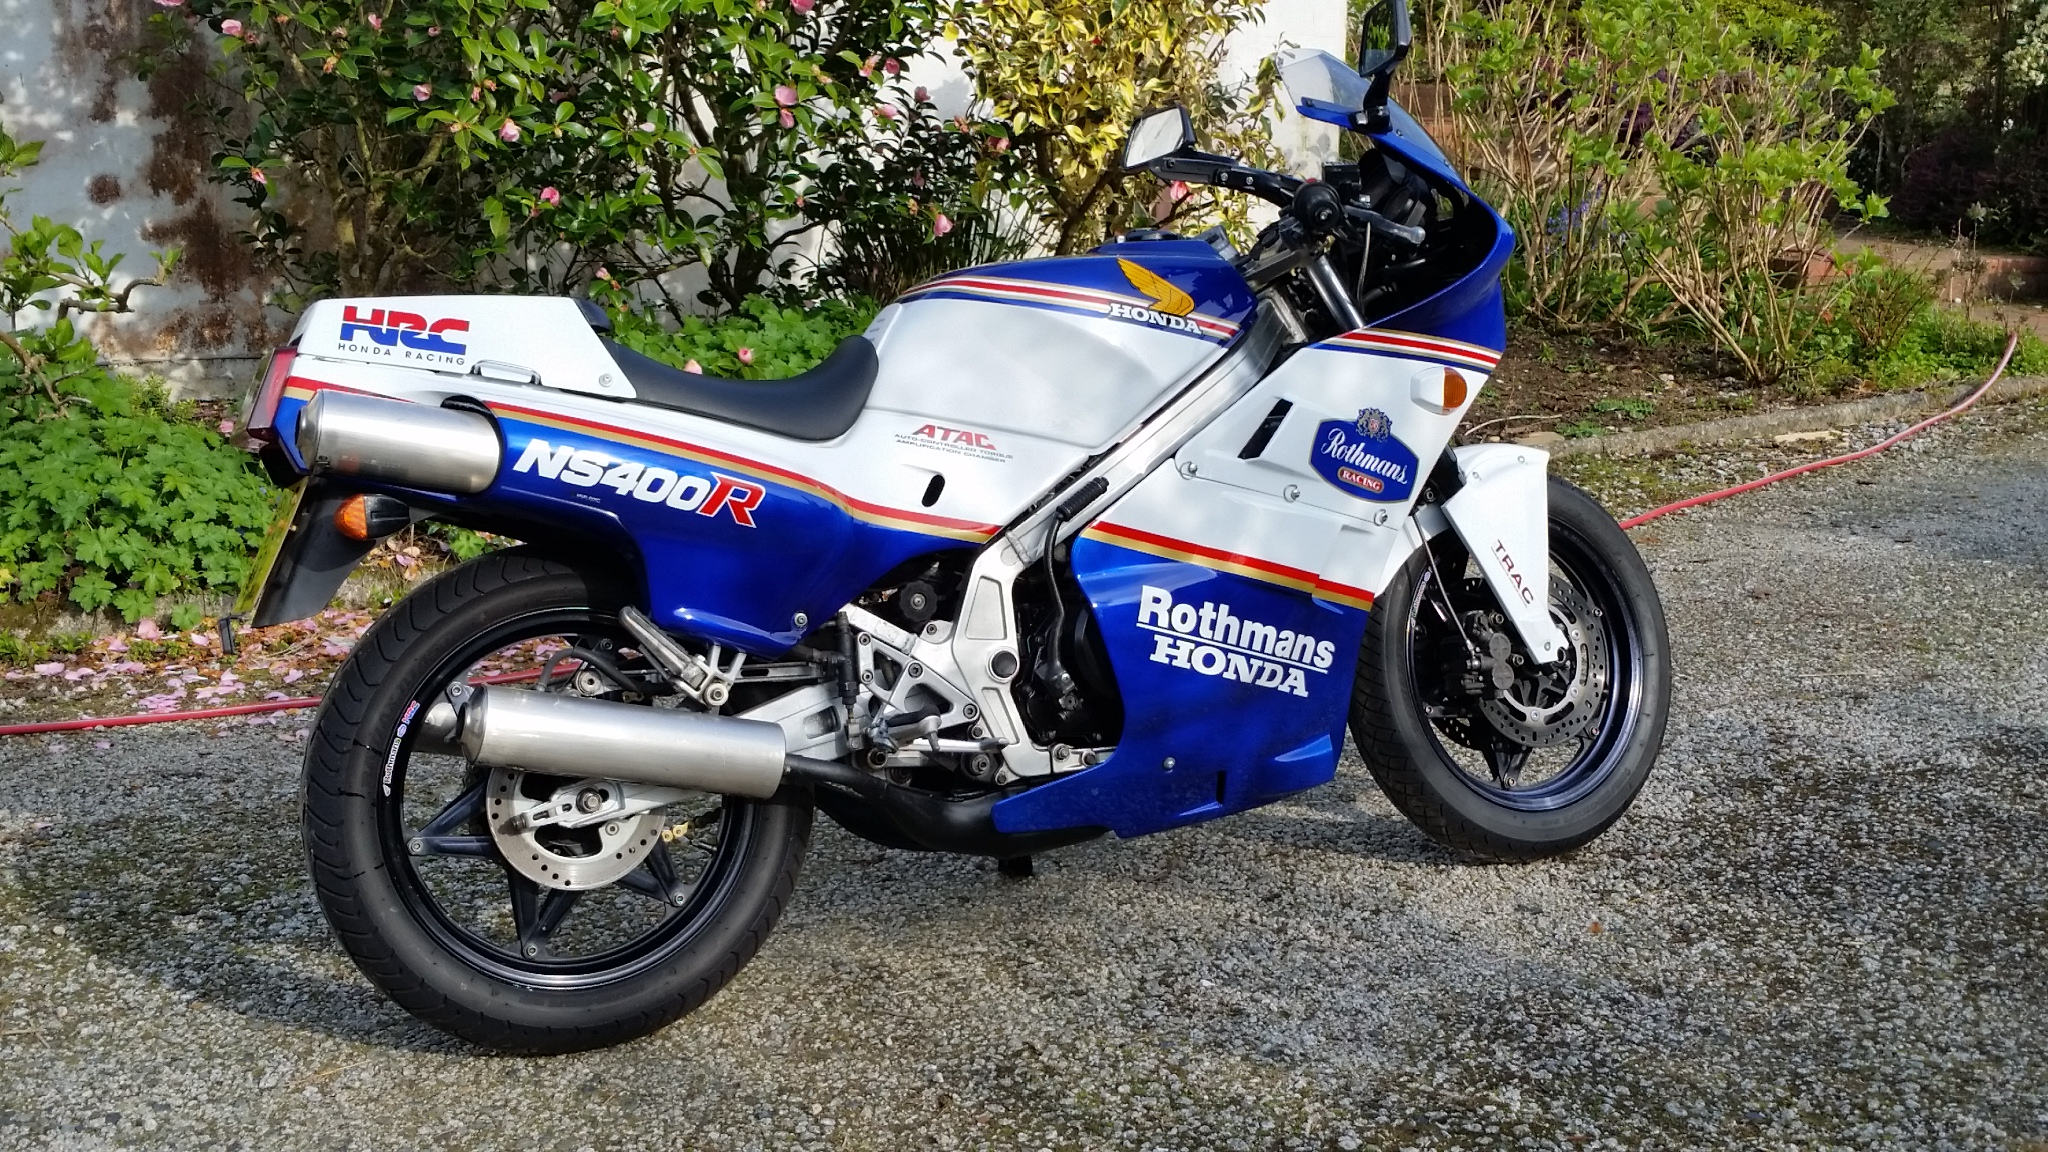 Honda NS400R Rothmans 1985 For Sale - 2-stroke Motorcycles ...